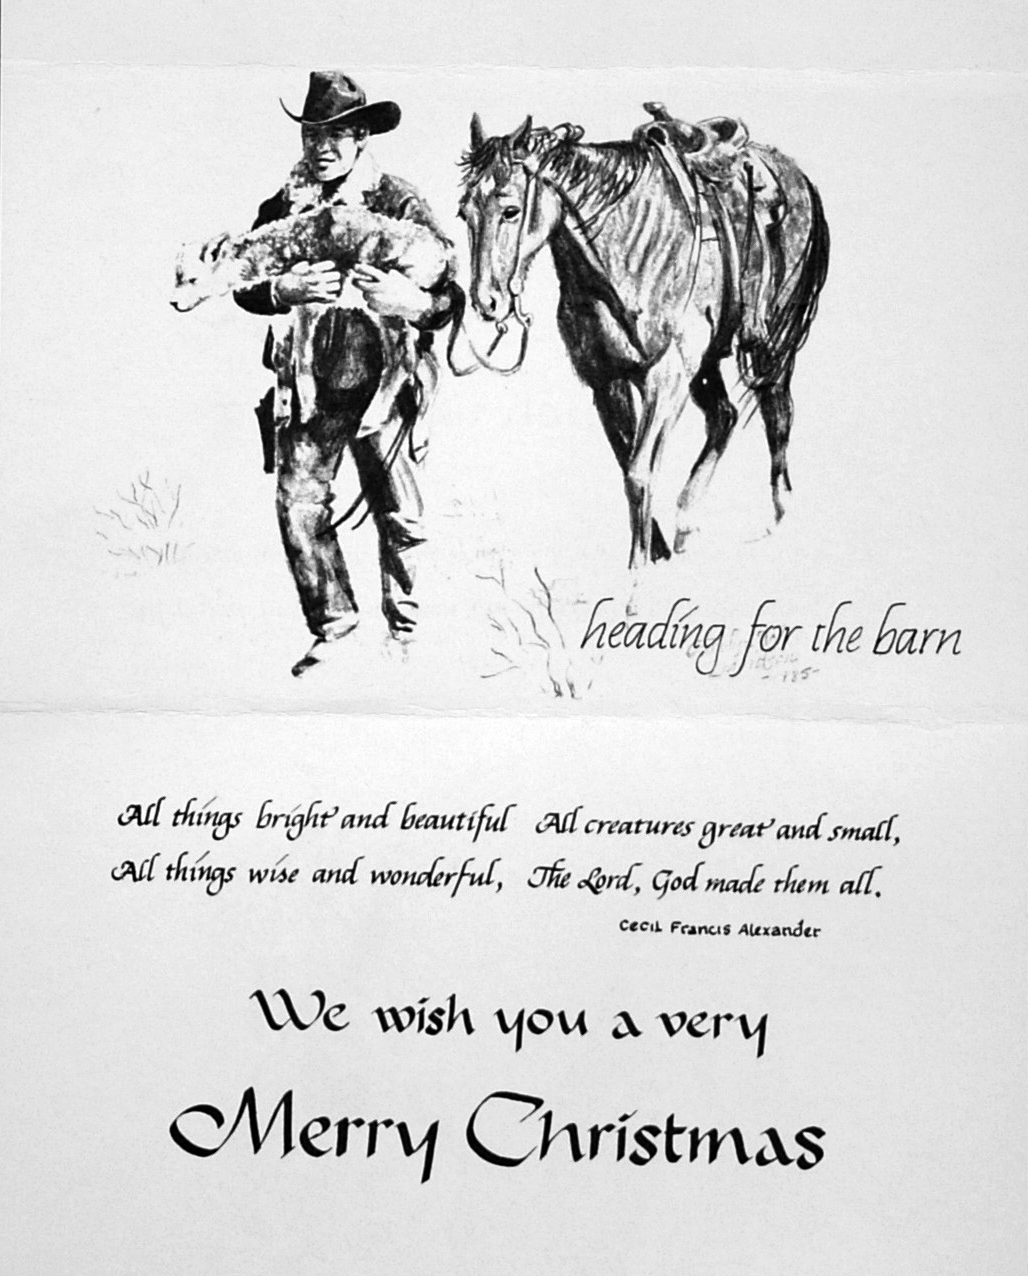 """"""" heading for the barn""""     """"All things bright and beautiful, All creatures great and small, All things wise and wonderful, The Lord, God made them all. -Cecil Francis Alexander""""    """"We wish you a very Merry Christmas""""    [Cowboy]"""